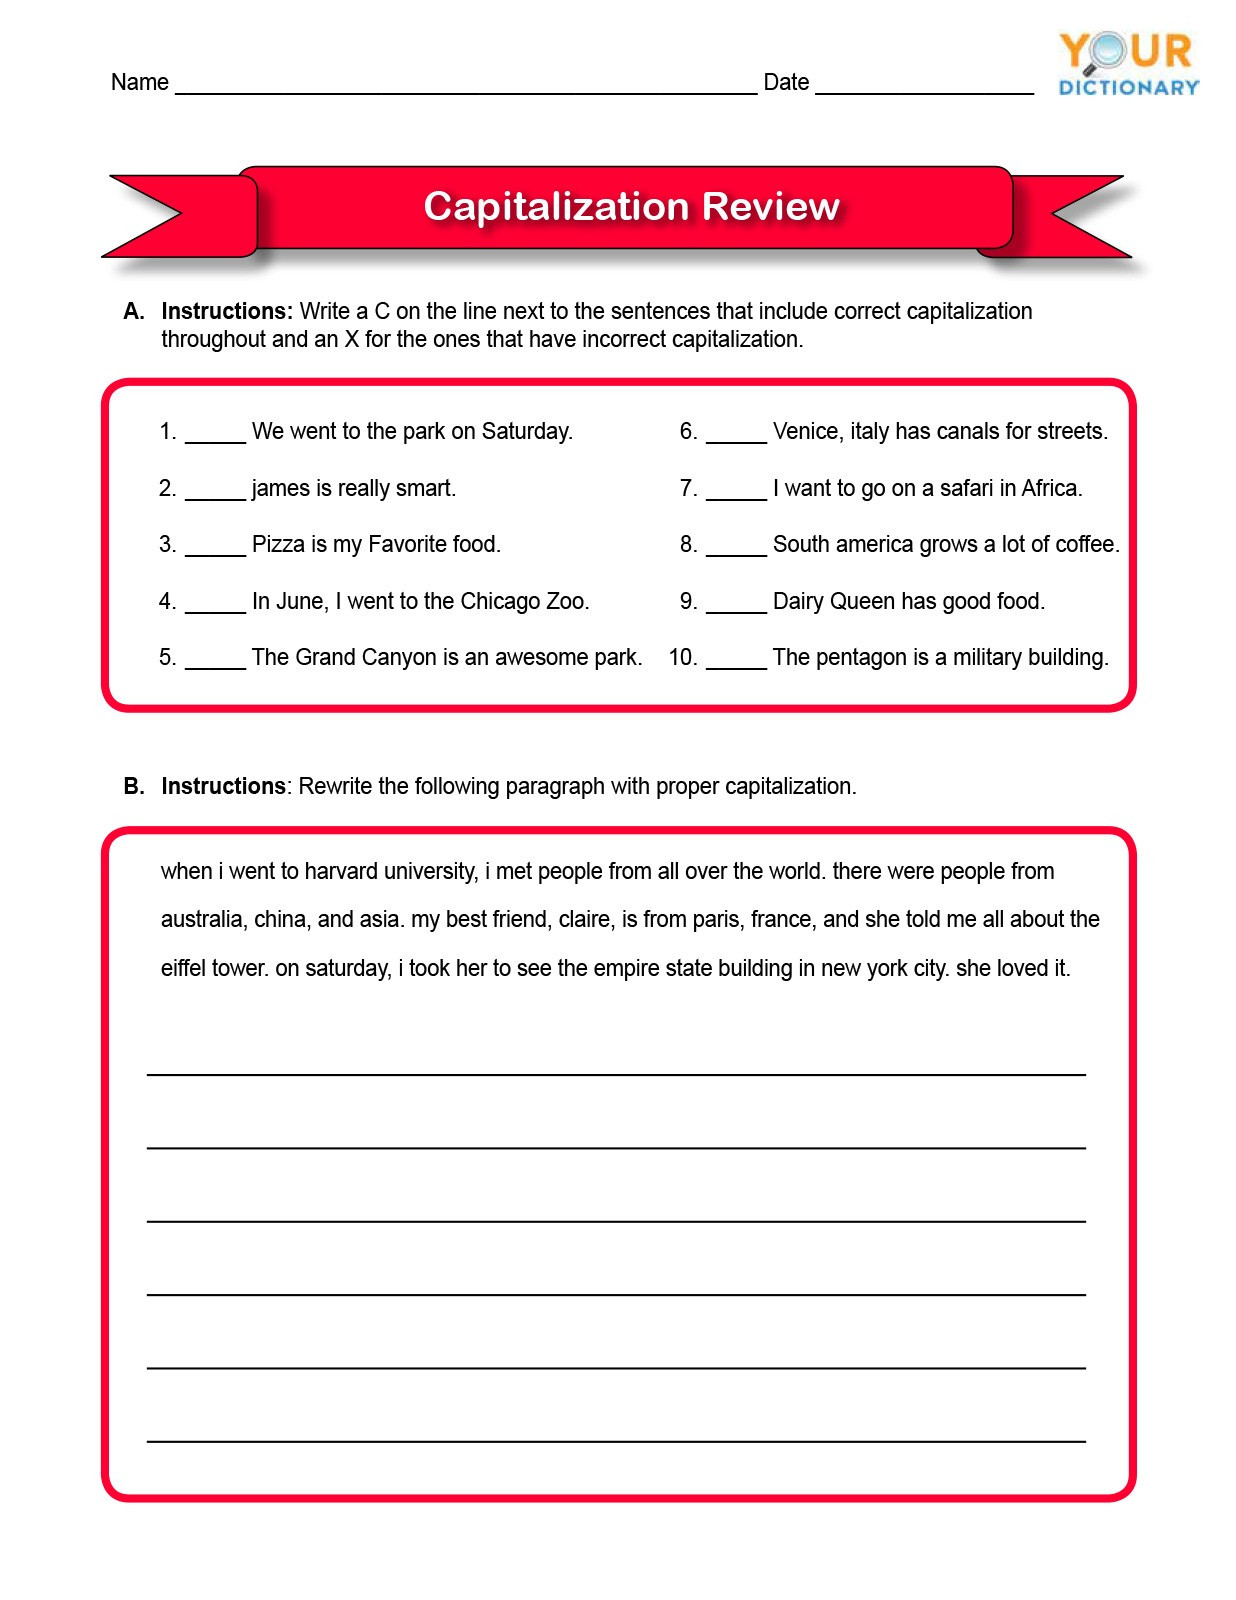 Following Directions Worksheet Third Grade Capitalizations Worksheet Third Grade